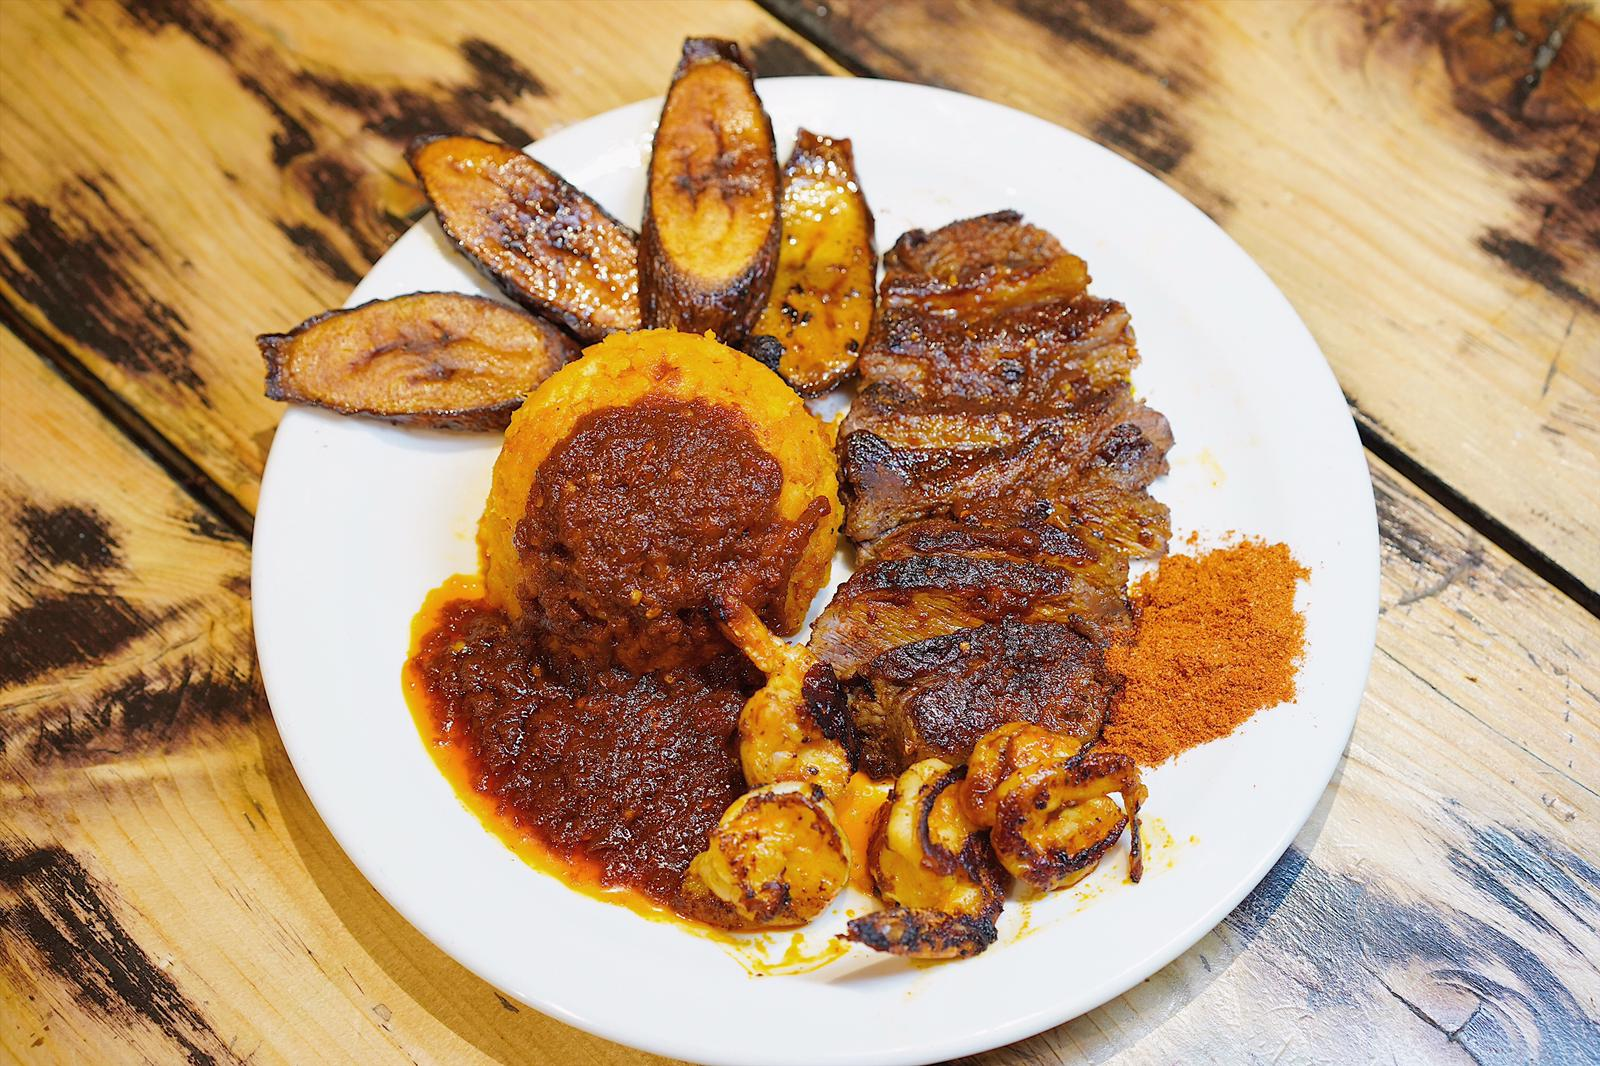 Suya Surf & Turf - A delicious Nigerian dish of suya spiced rump steak, suya grilled prawns, asaro, eaw agoyin sauce, pottage and fried plantain